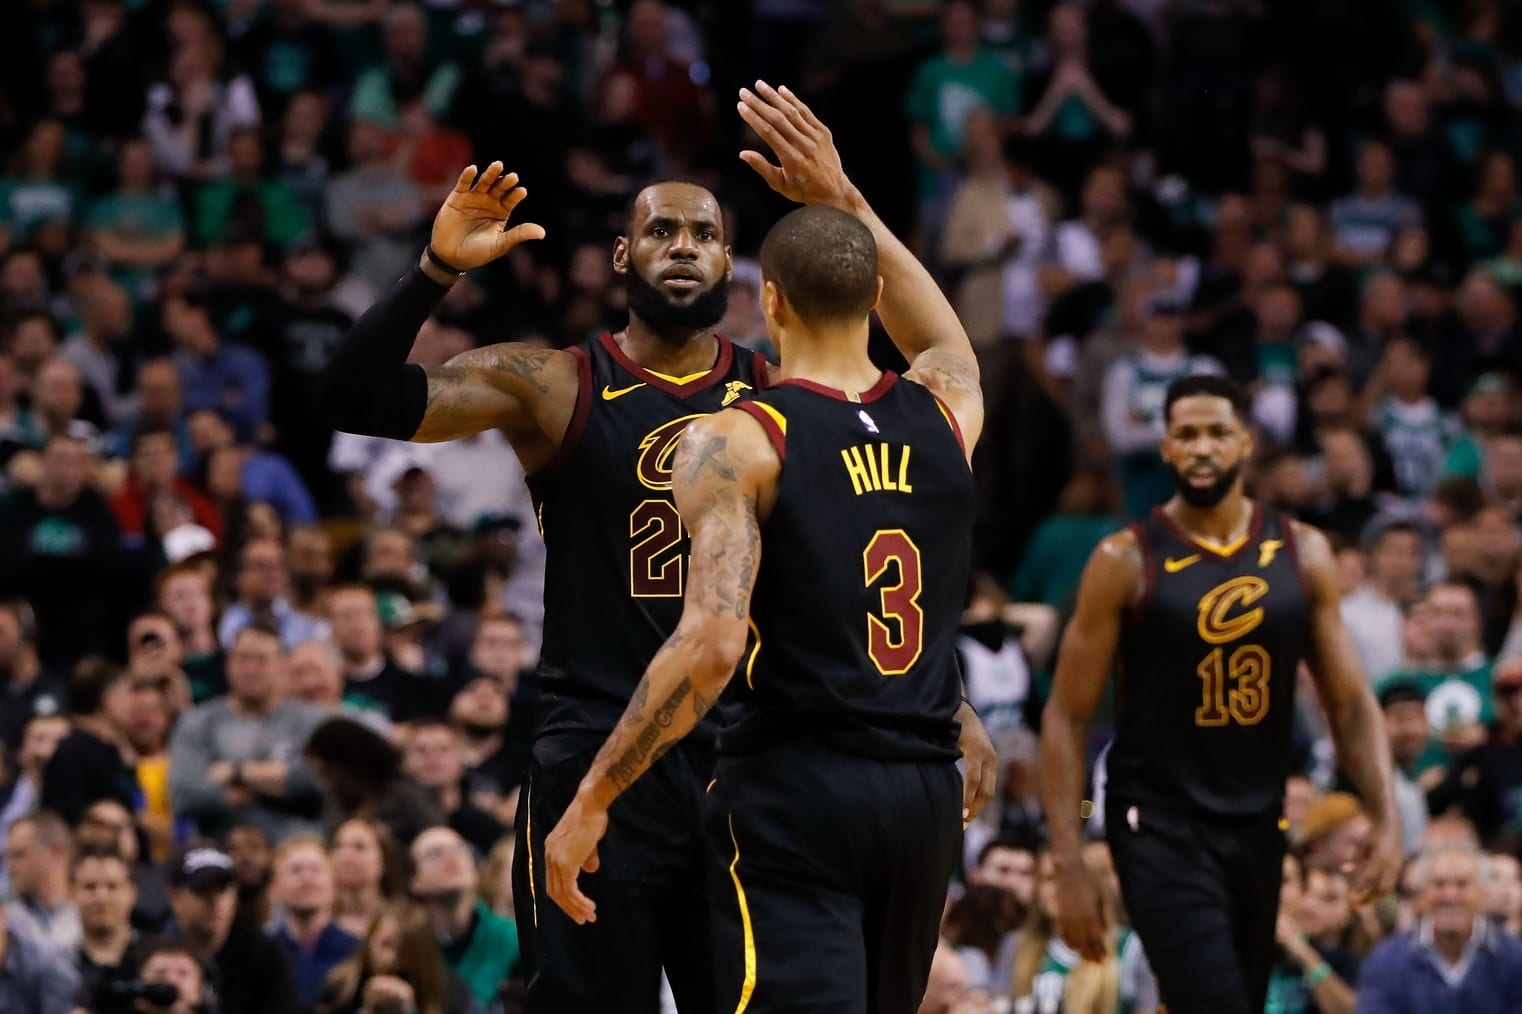 deea2e583af7 Lakers News  George Hill Urges Cavaliers Fans Not To Boo LeBron James In  Return To Cleveland